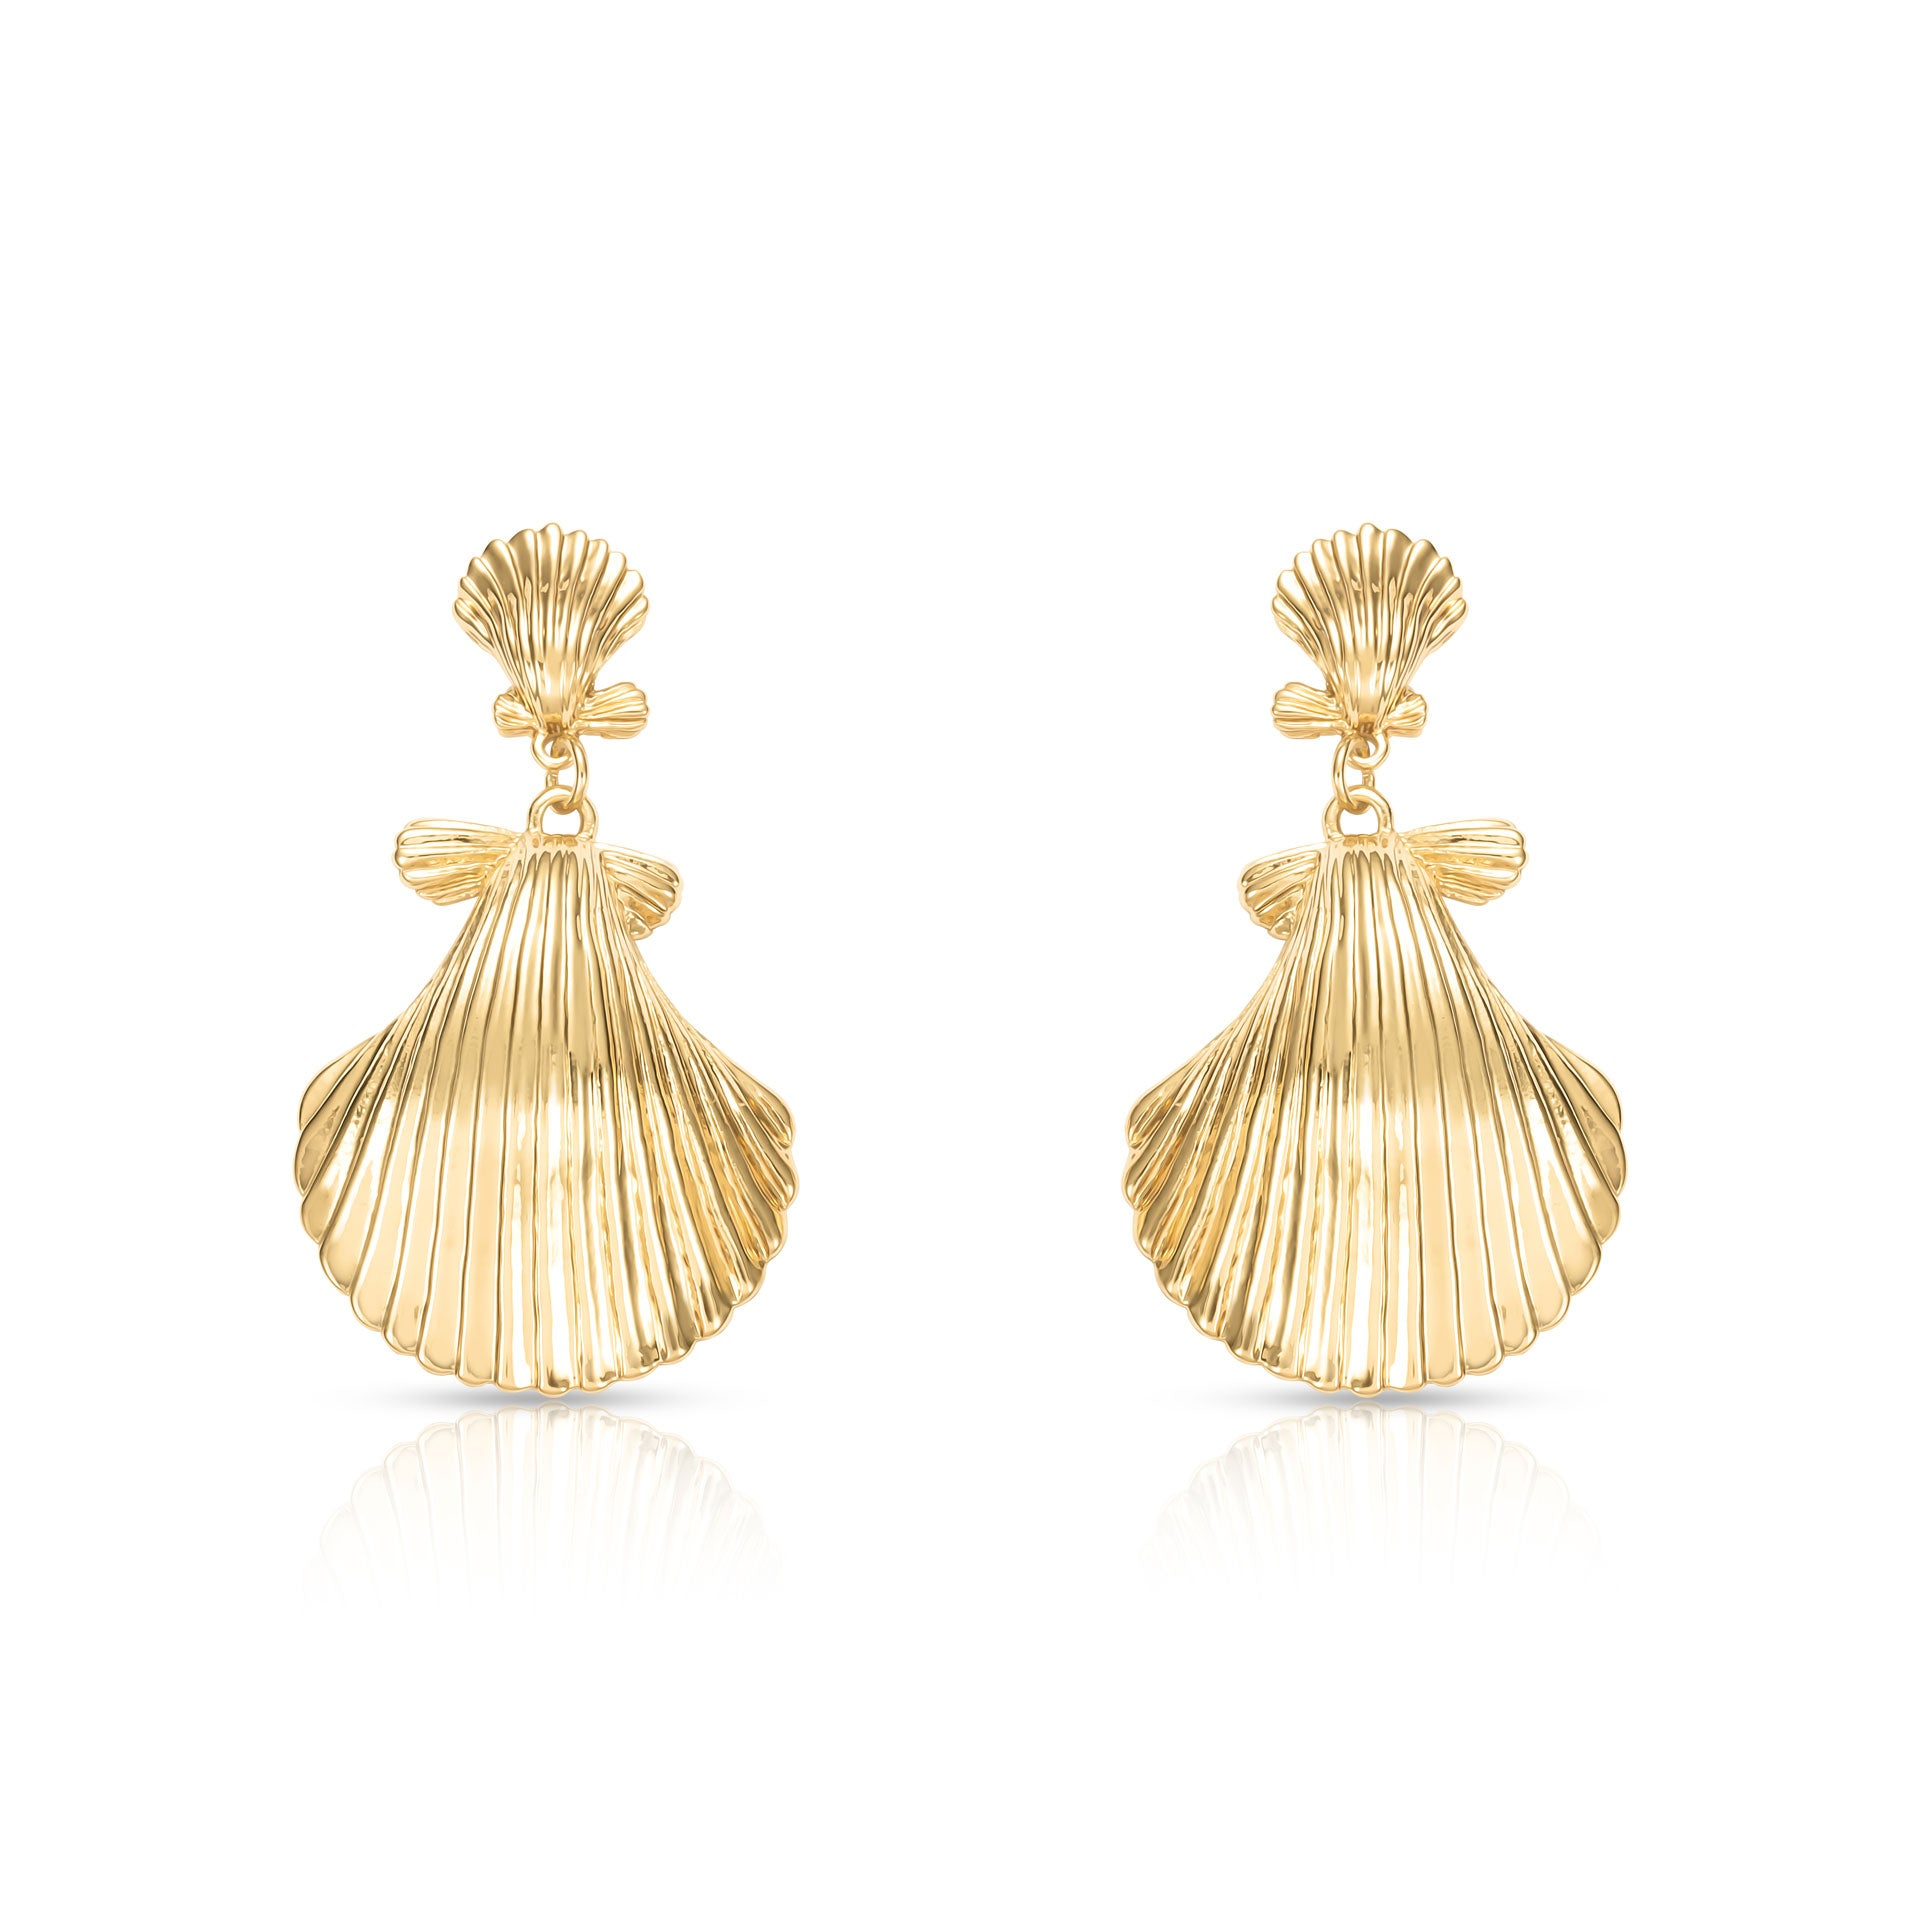 THE VIOLA EARRINGS